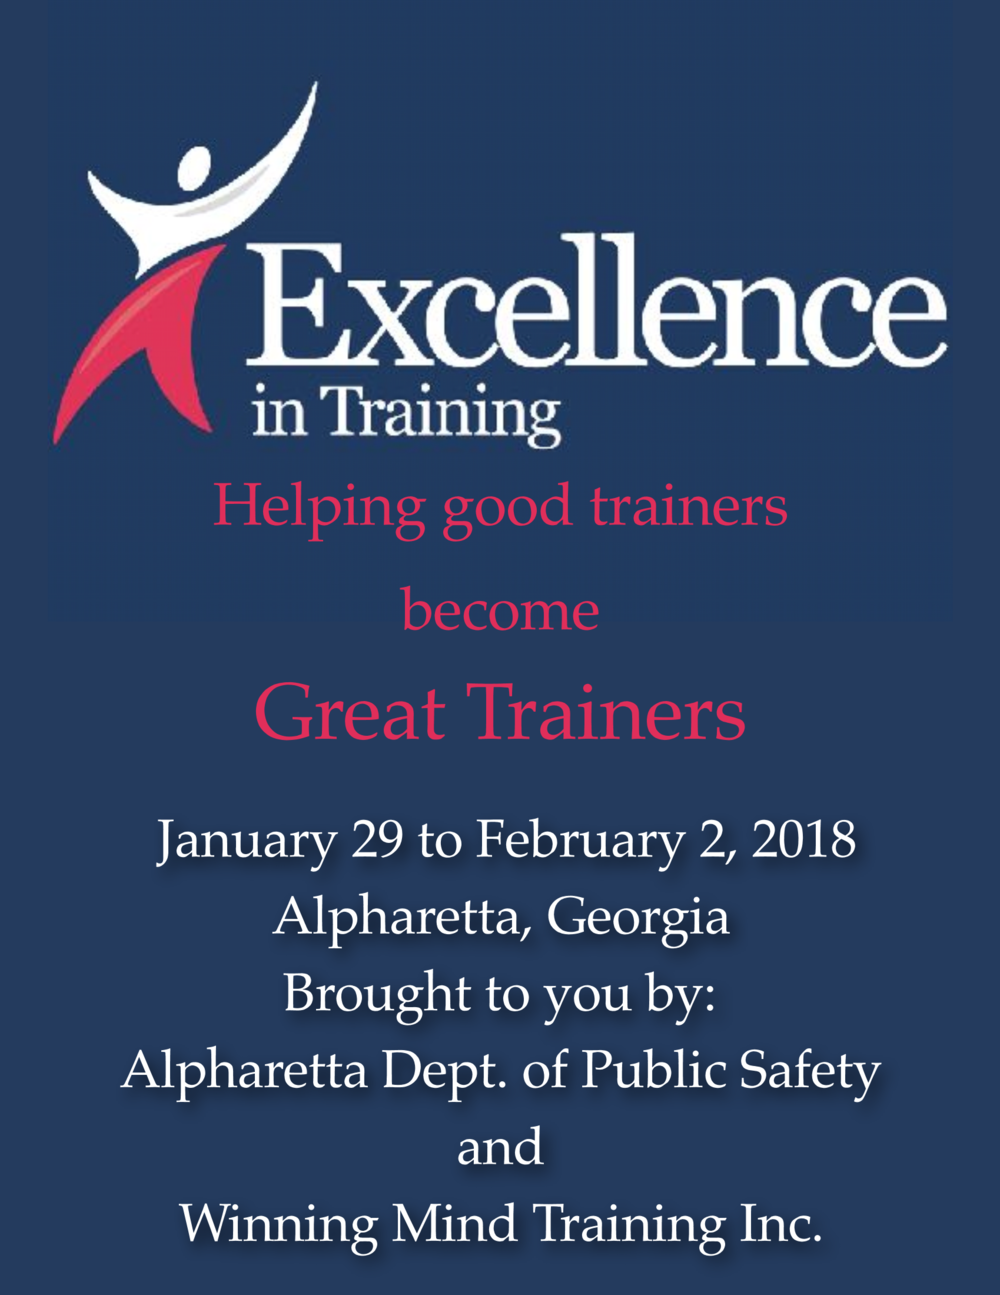 Excellence in Training Course Alpharetta GA January 29 to Feb 2 2018_Page_1.png